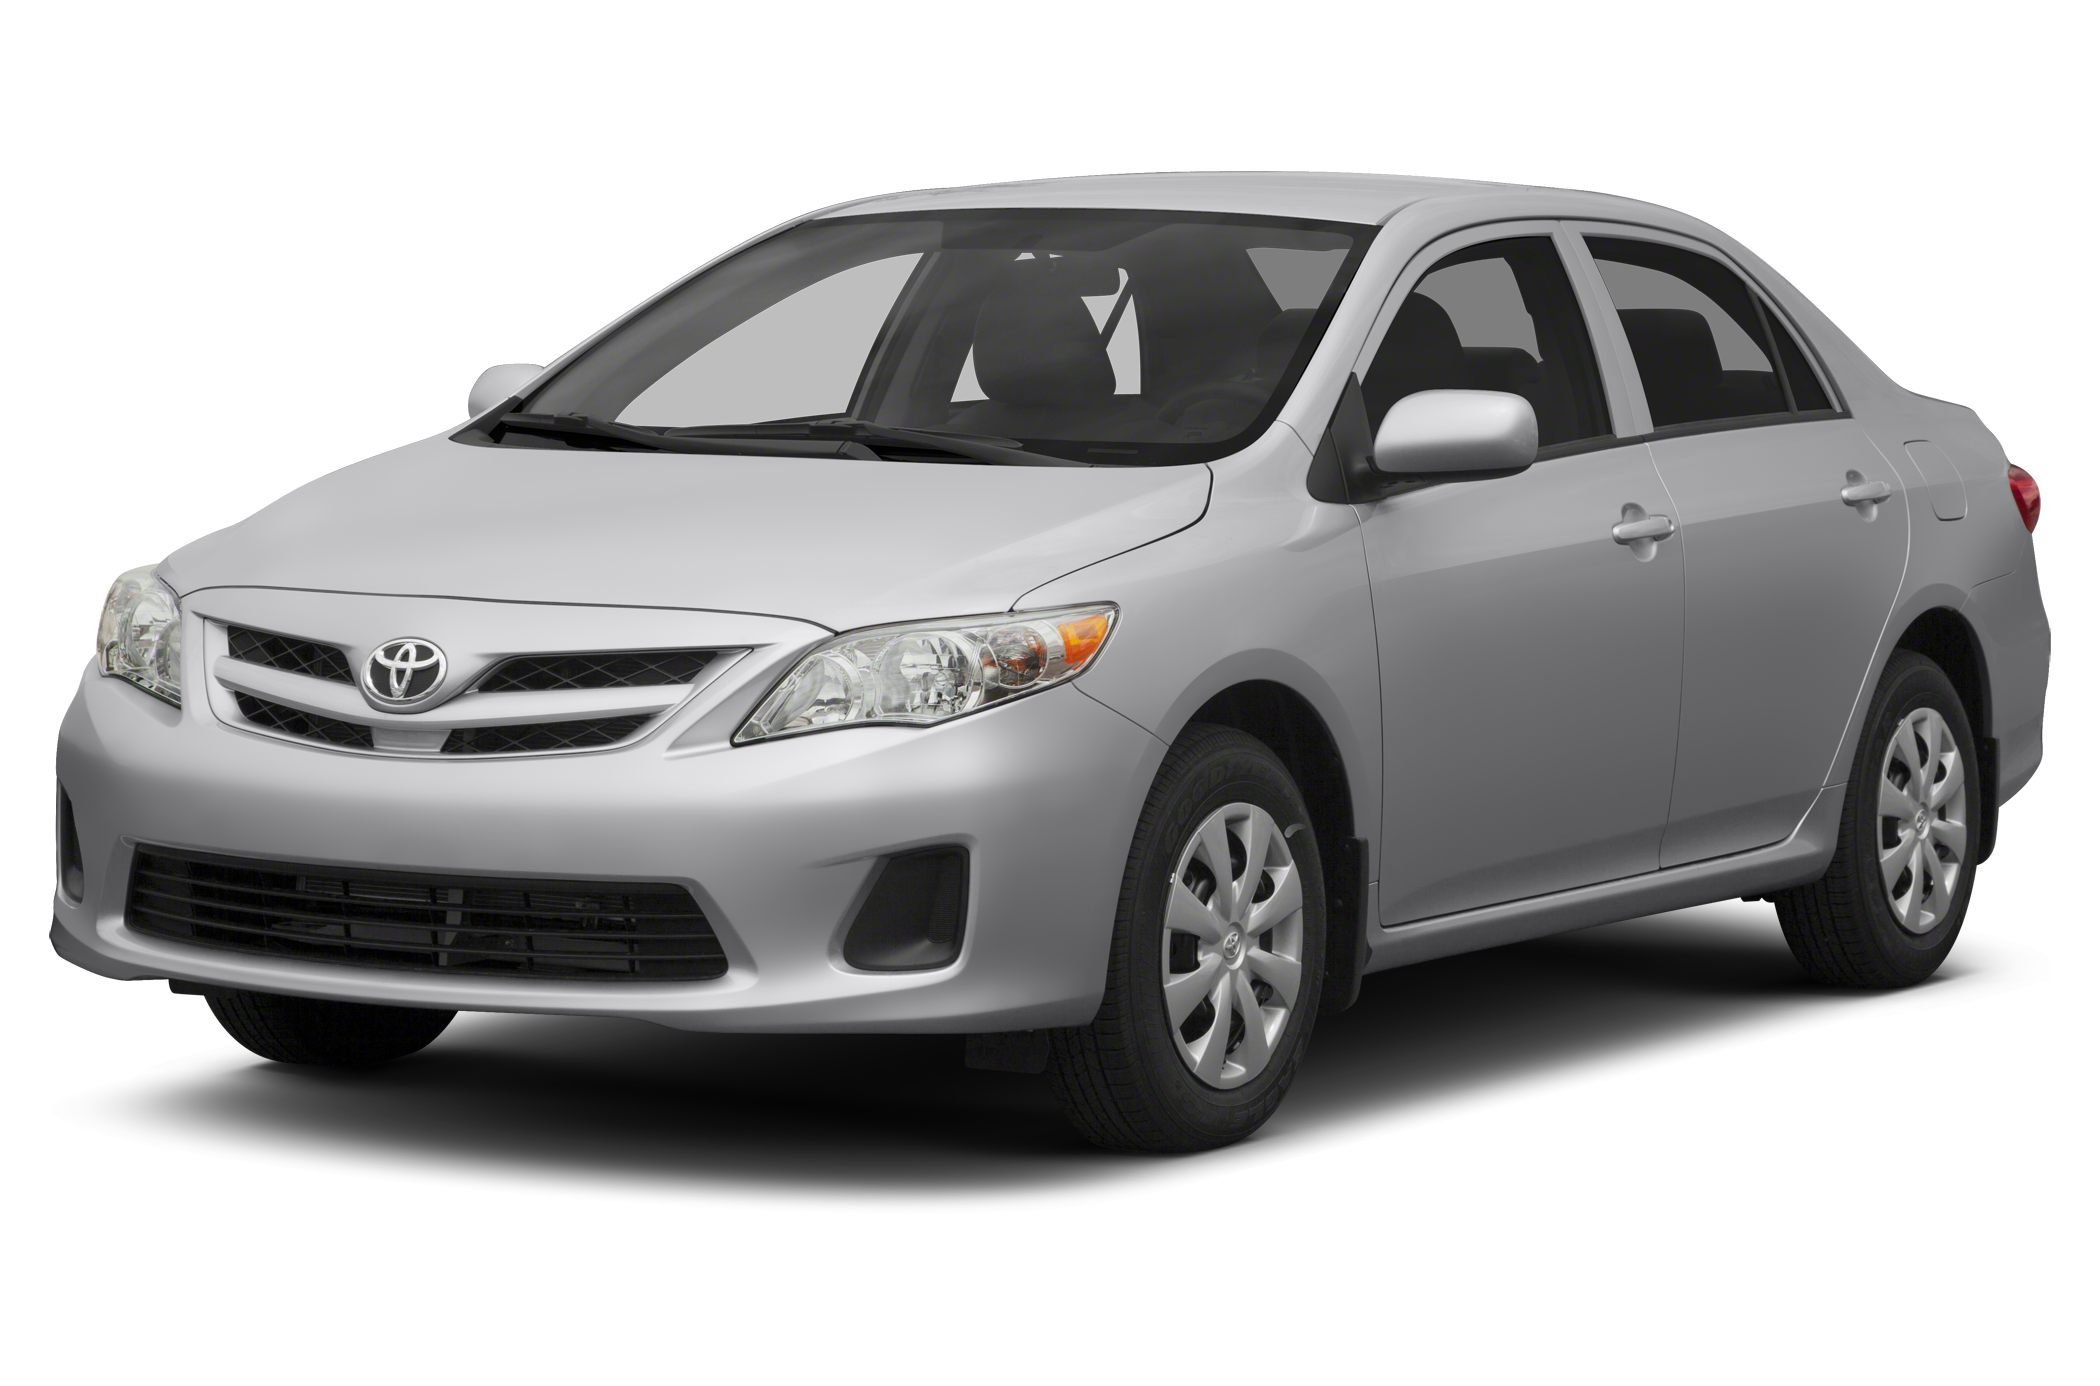 2012 Toyota Corolla LE Sedan for sale in Bronx for $12,000 with 22,845 miles.